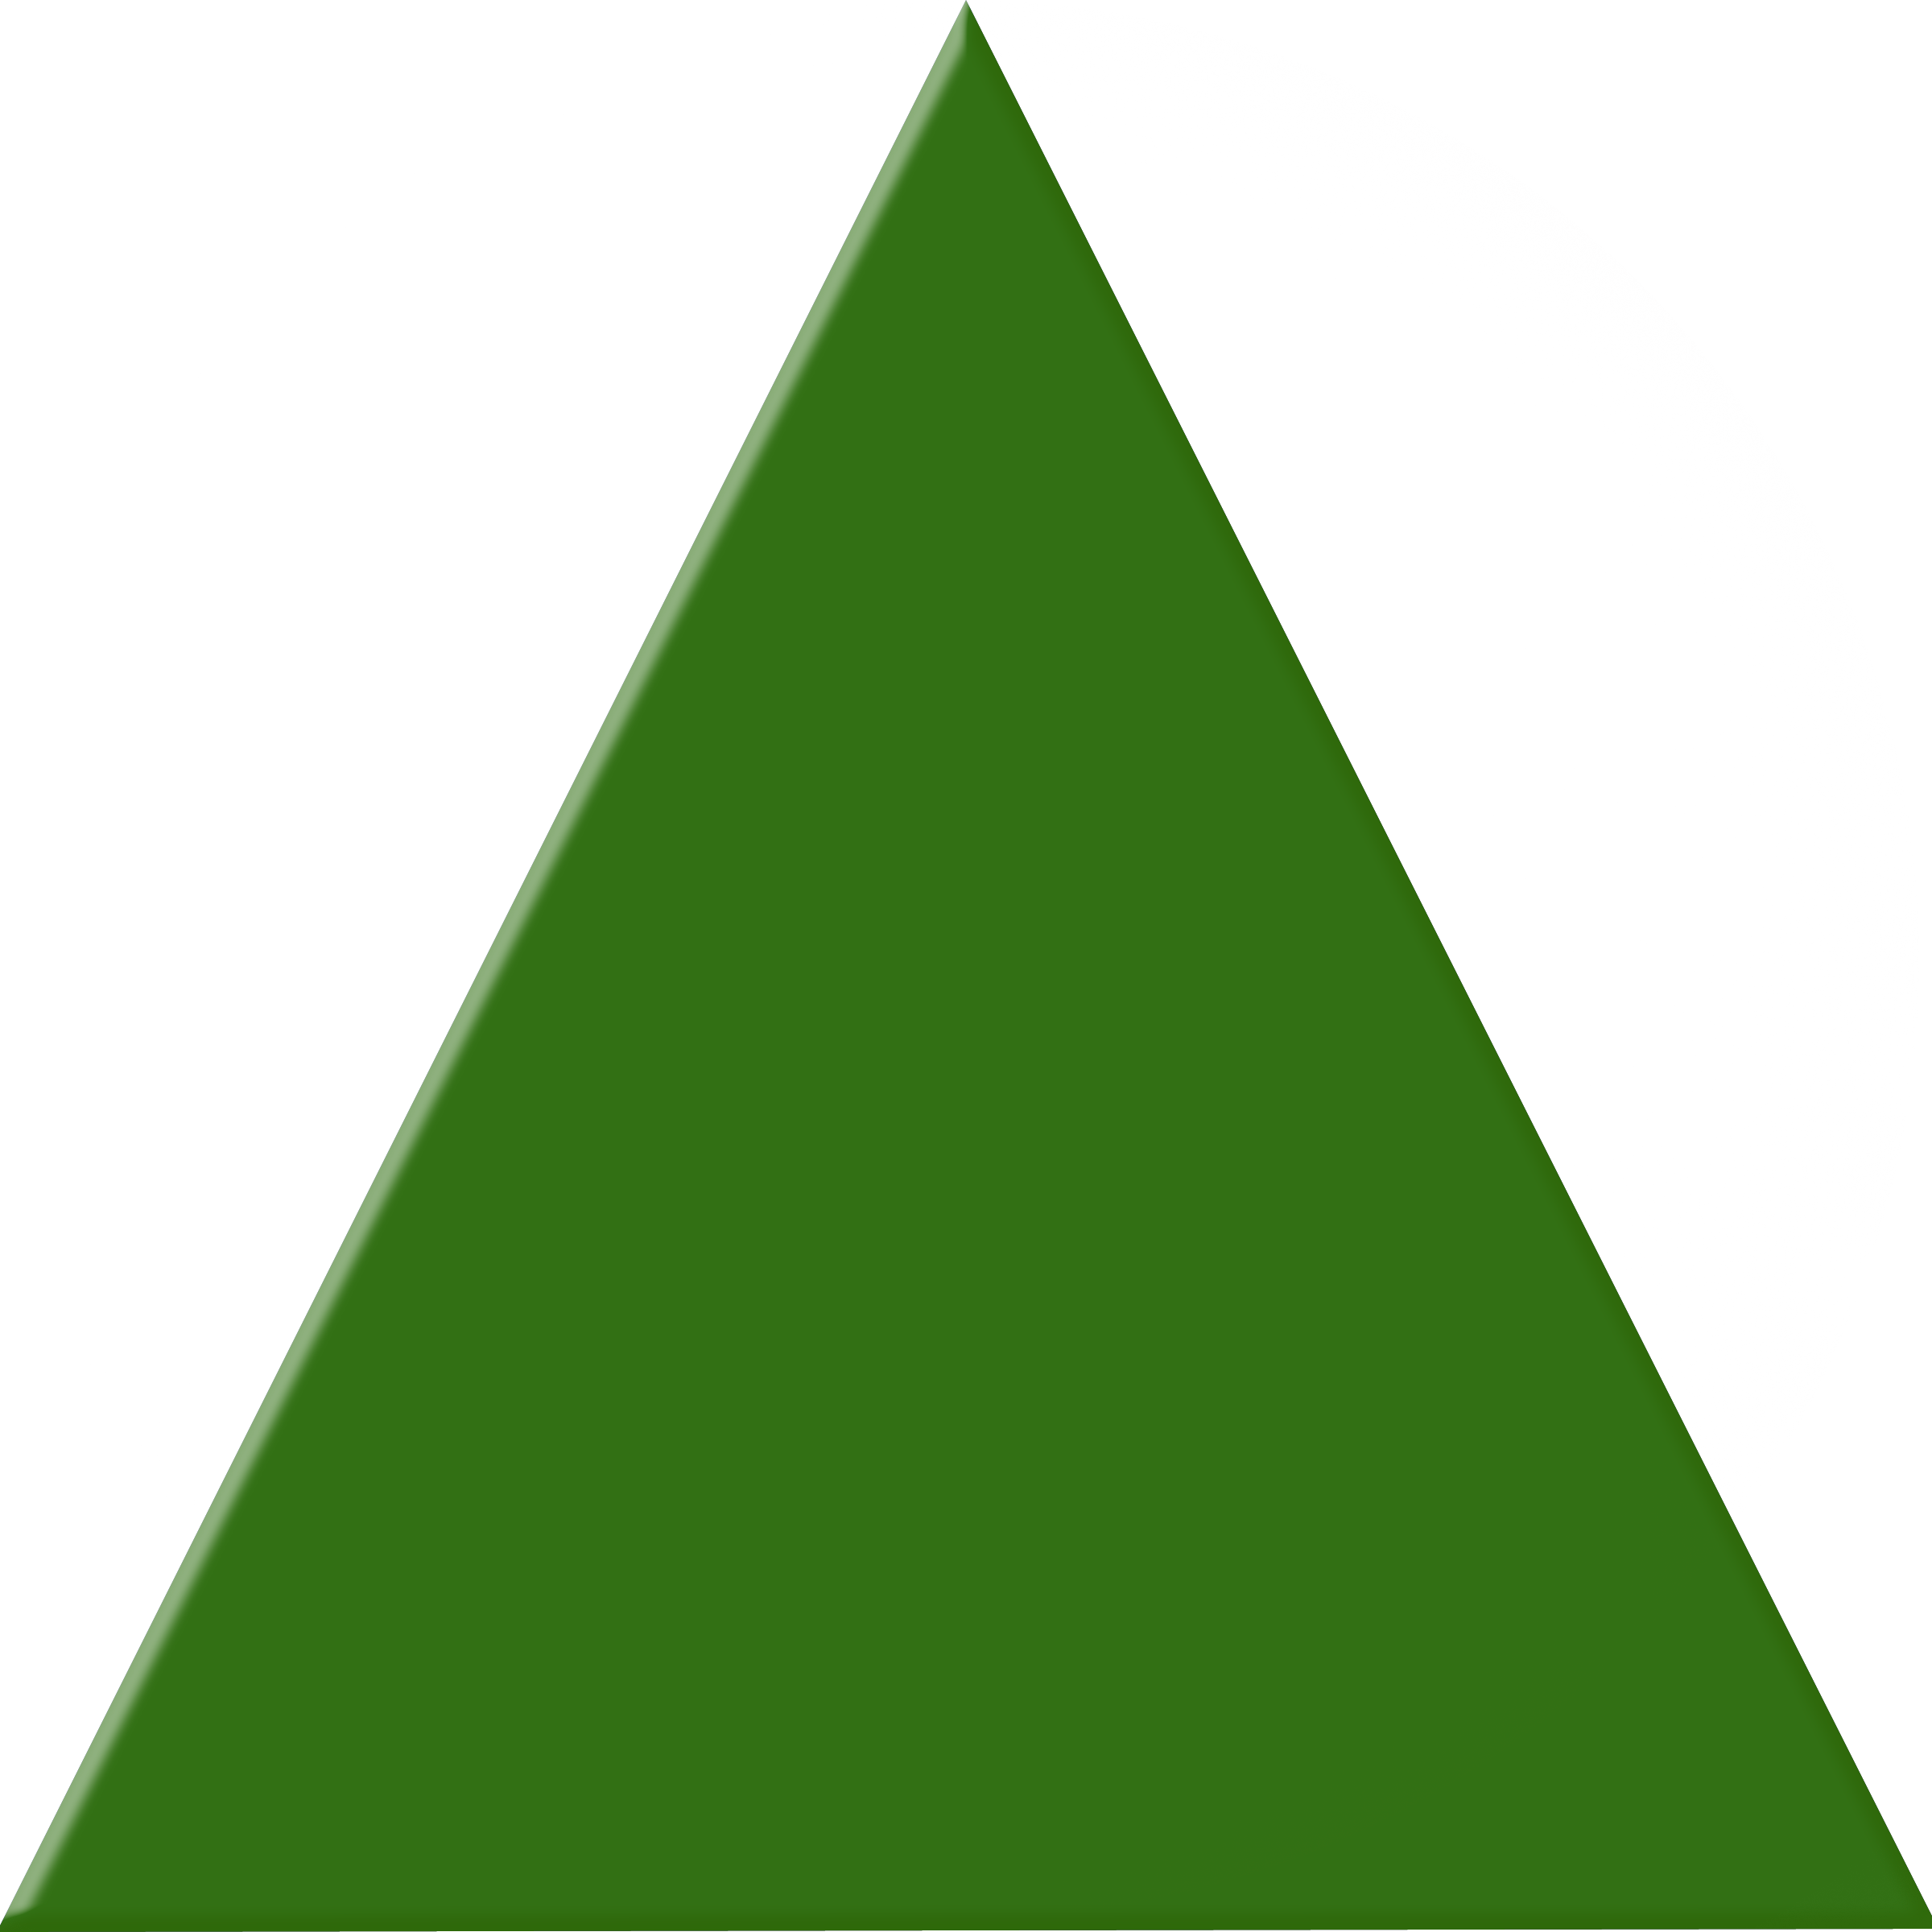 Triangle Vector Free